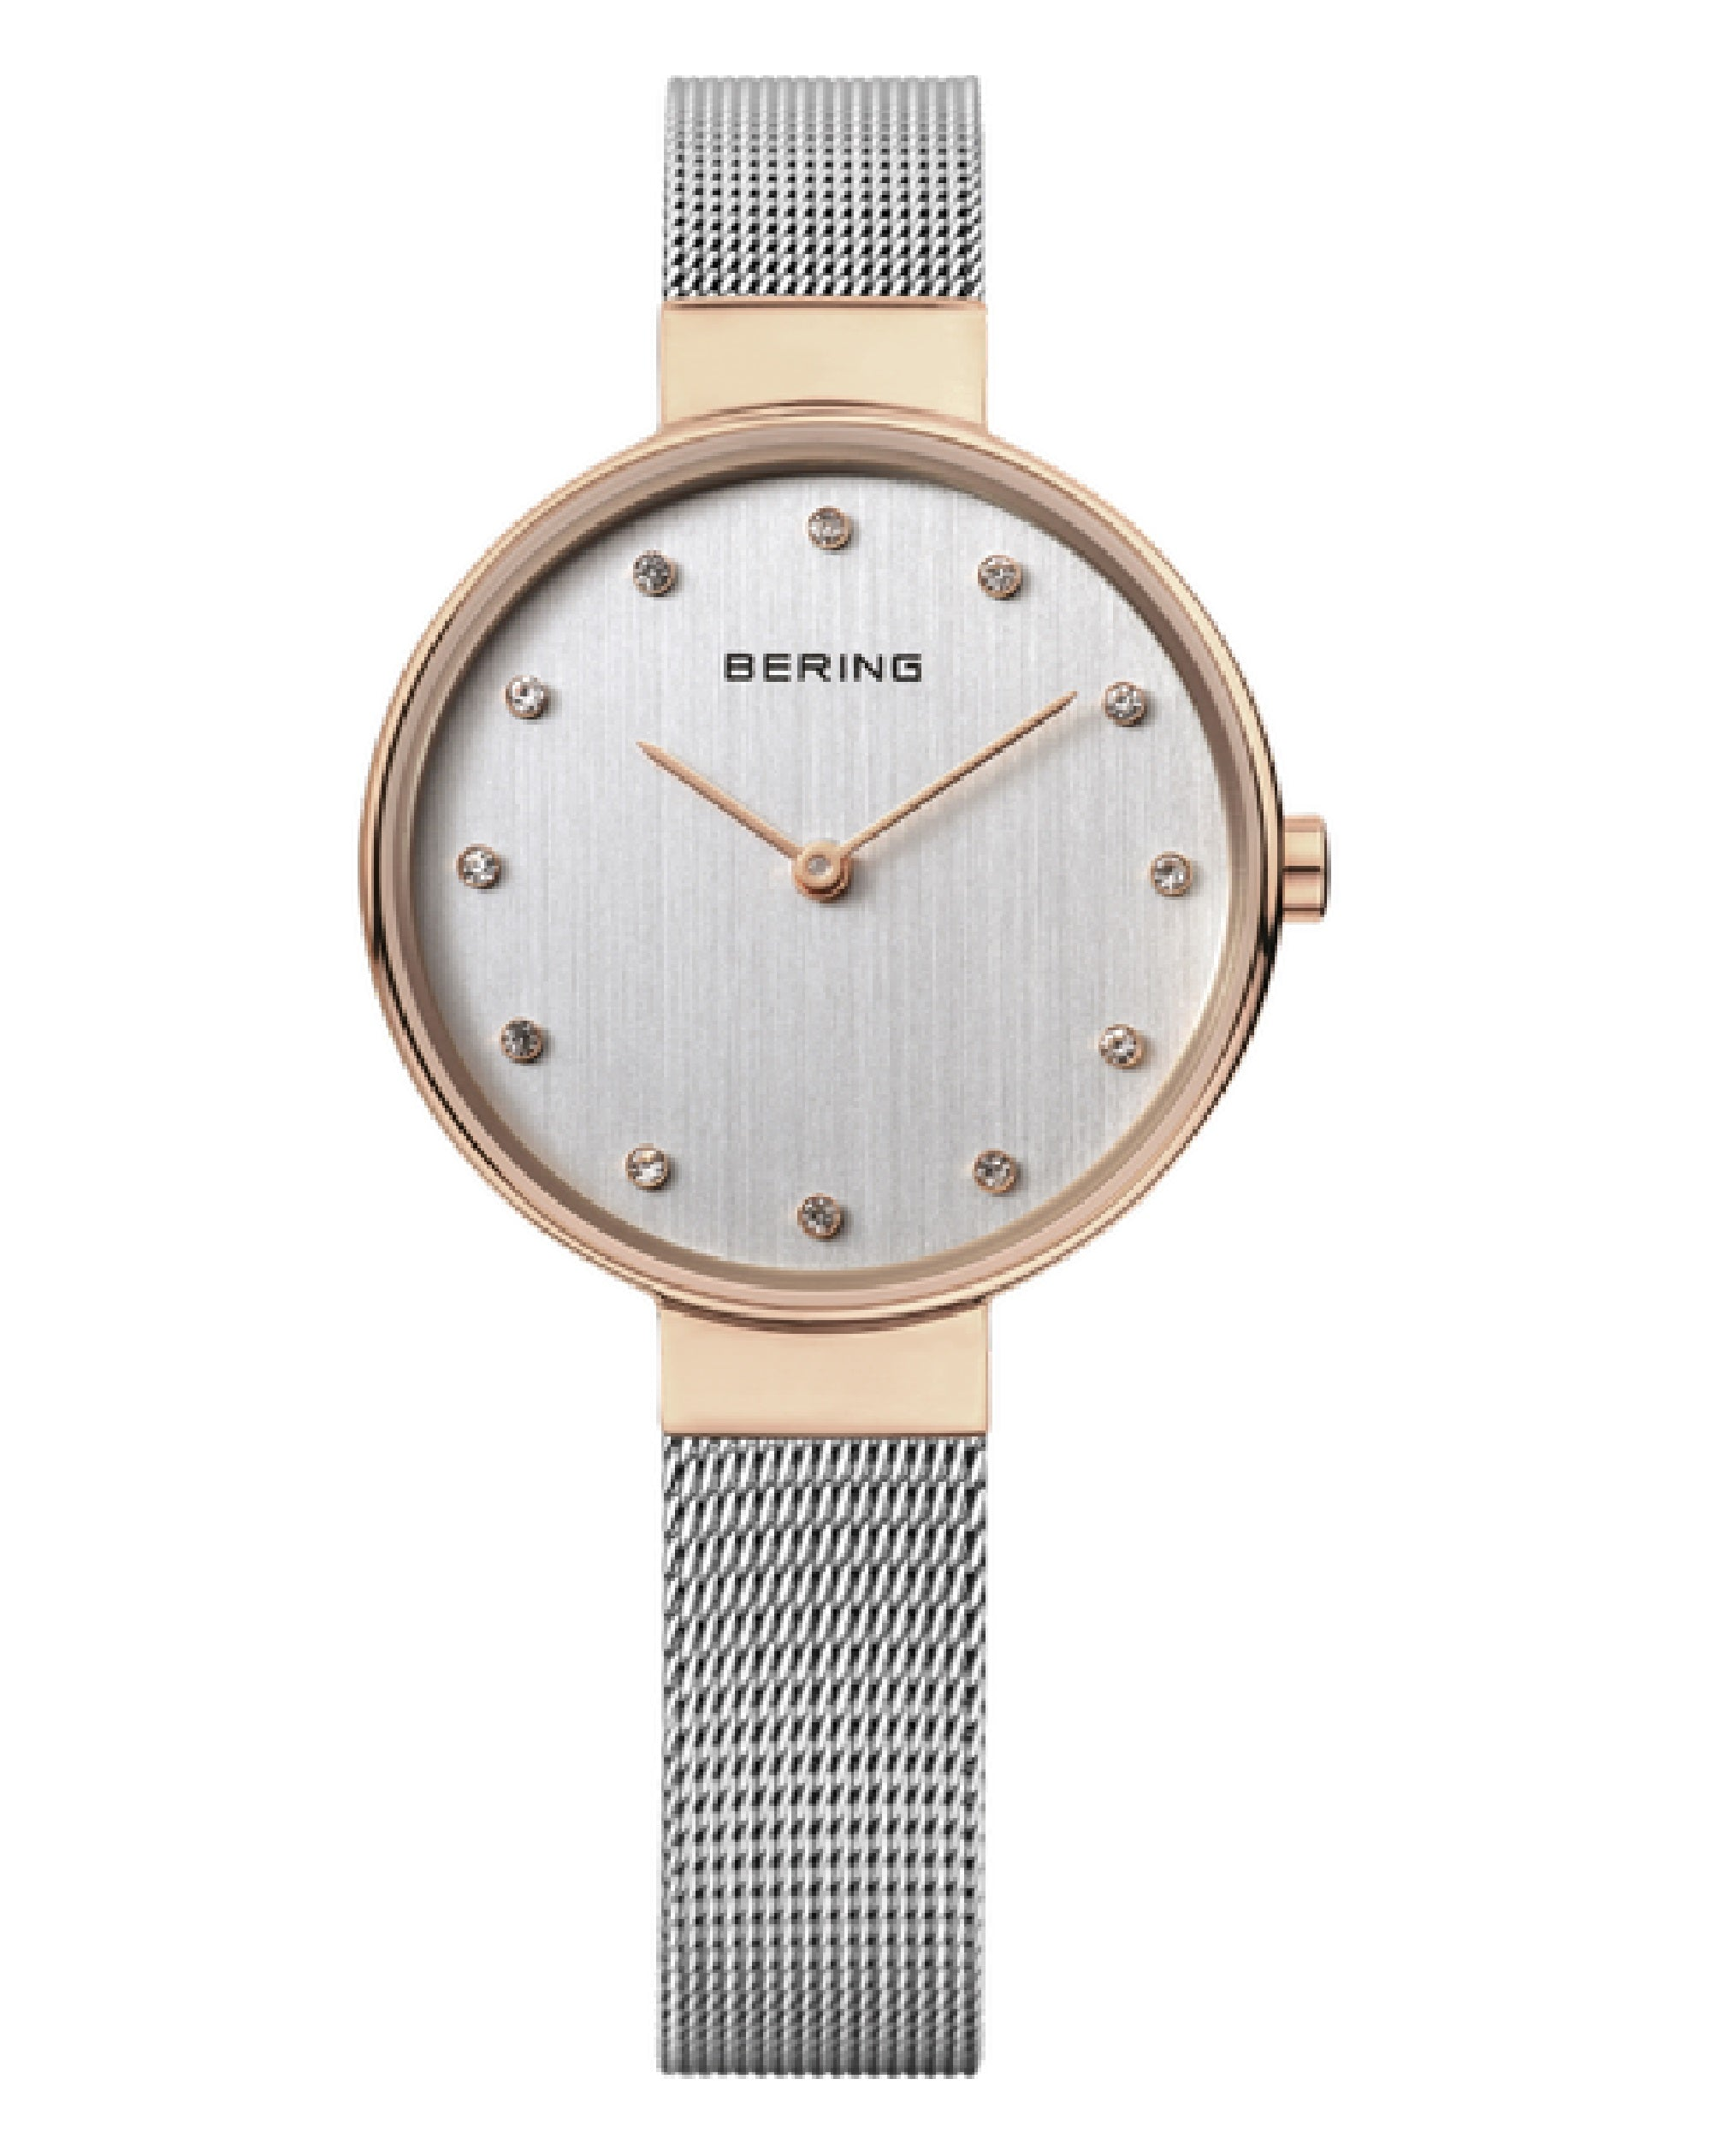 12034-064 Bering Classic Collection Quartz Watch